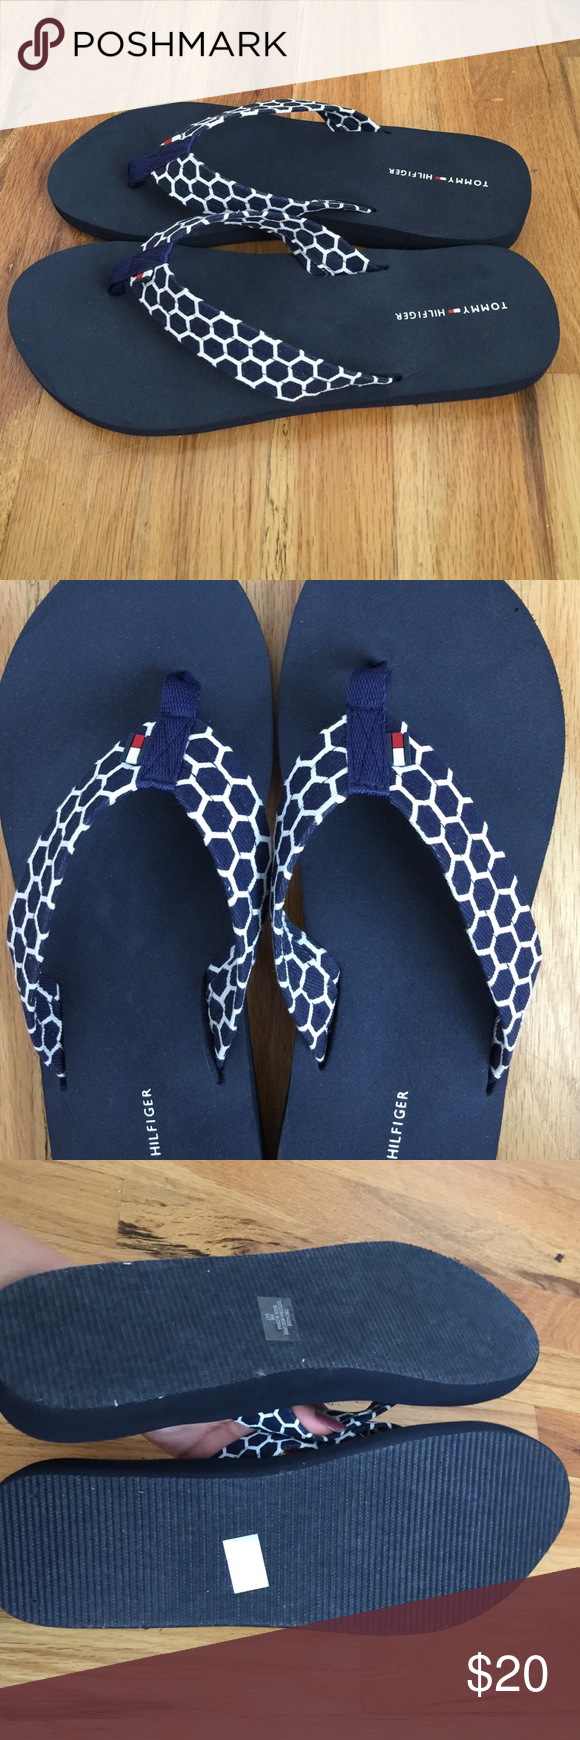 Tommy Hilfiger flip flops Navy color Tommy Hilfiger flip flops very comfortable.Perfect new condition Tommy Hilfiger Shoes Sandals